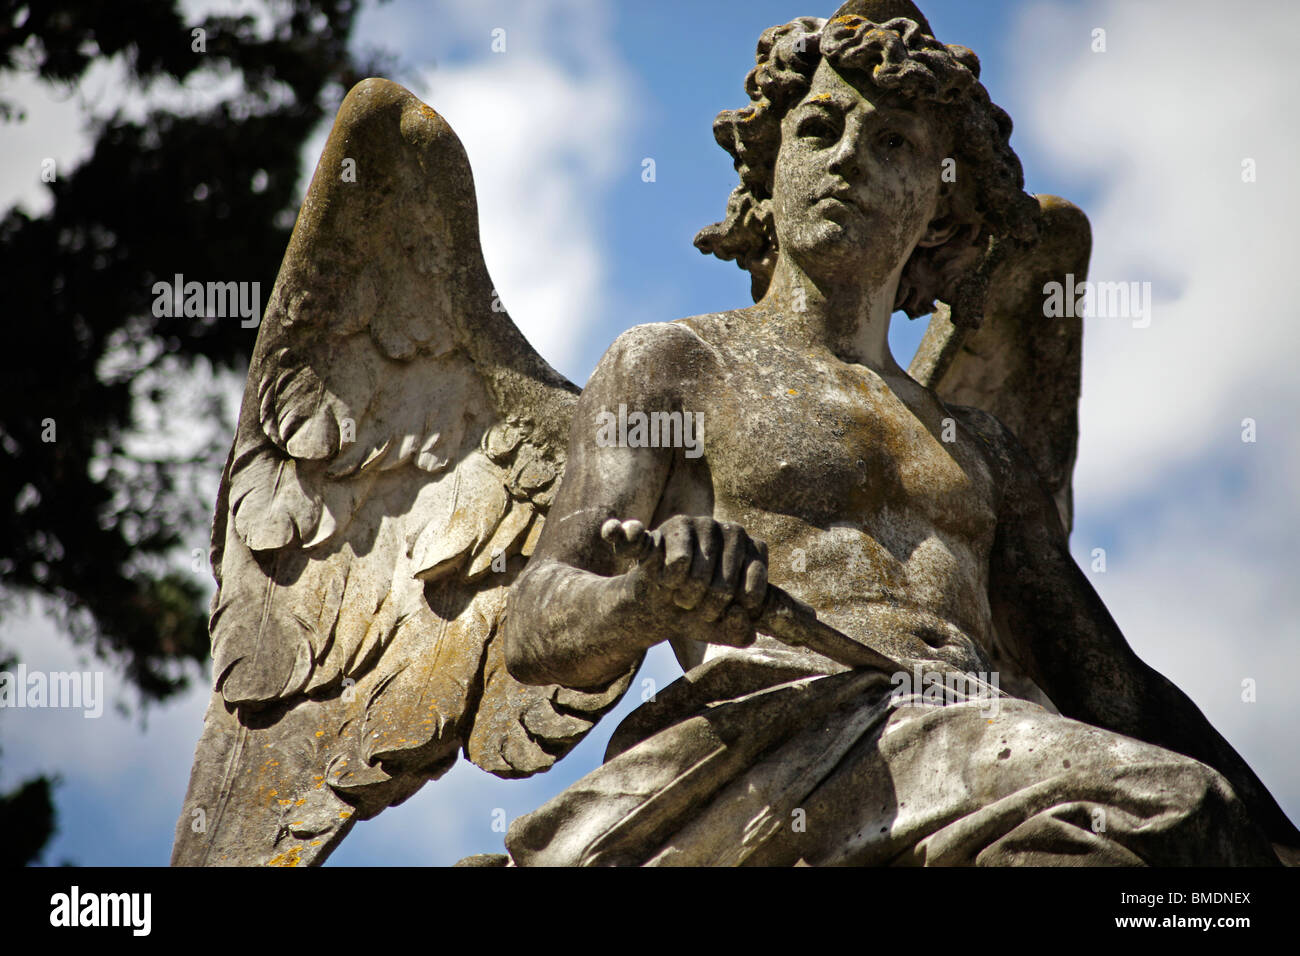 Angel on the Prazeres Cemetery in Lisbon, Portugal, Europe - Stock Image